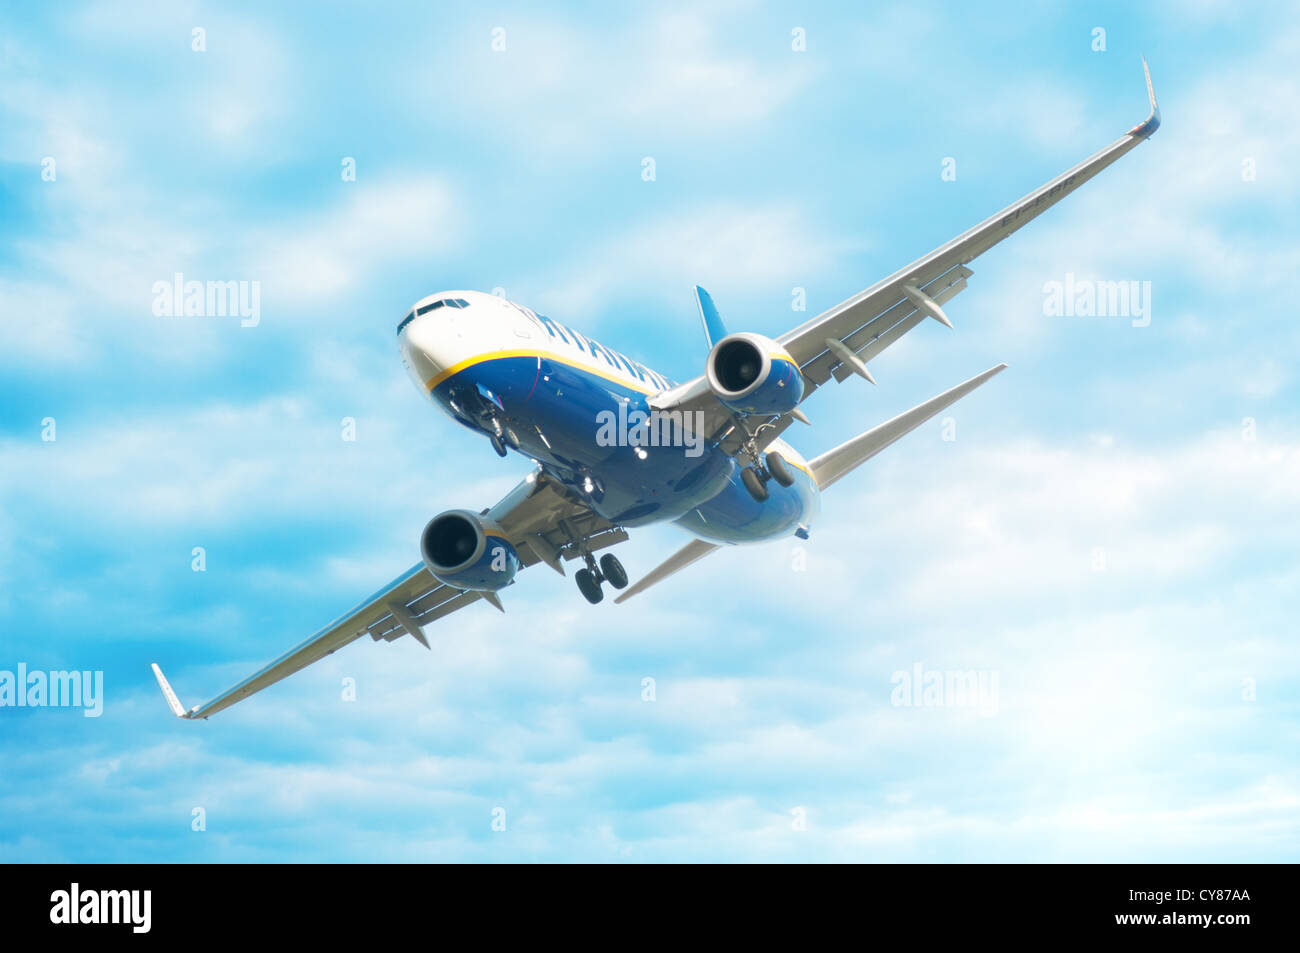 Ryanair airplane flying in the air - Stock Image